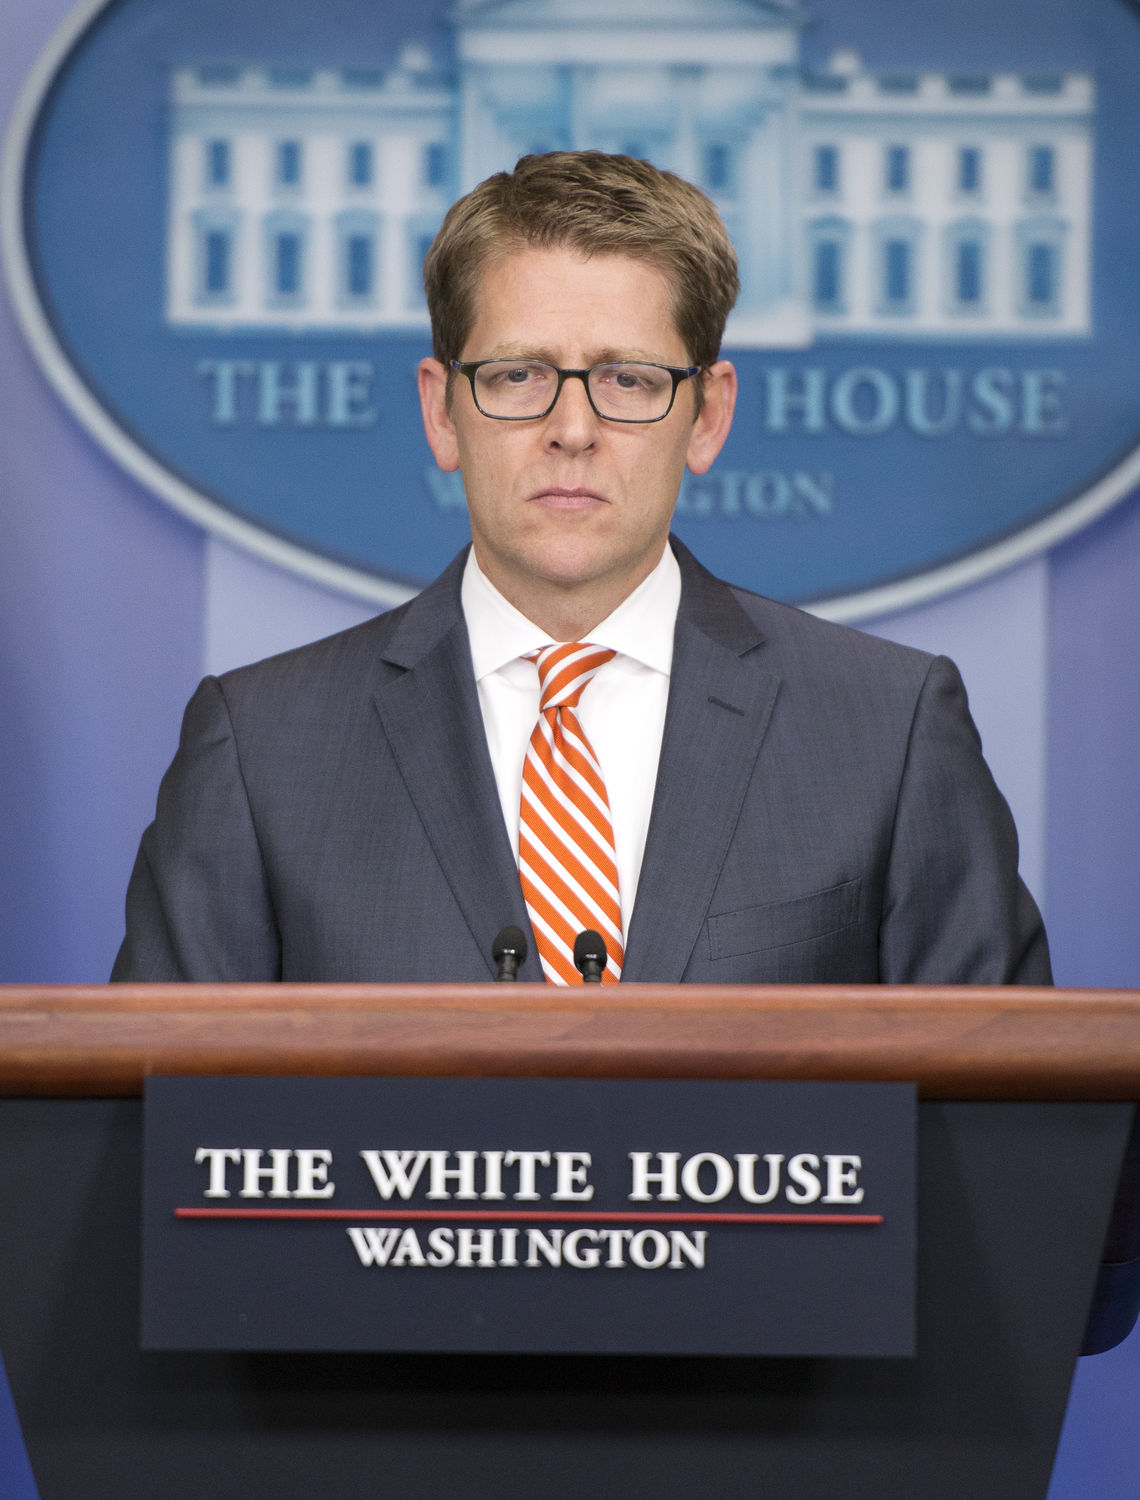 White House Press Secretary Jay Carney conducts his daily press briefing in the Brady Press Briefing Room of the White House in Washington, D.C. on December 12, 2013. He took questions about access for still photographers in the wake of the op-ed piece in the New York Times by Santiago Lyon, Vice President and Director of Photography at The Associated Press. UPI/Ron Sachs/Pool